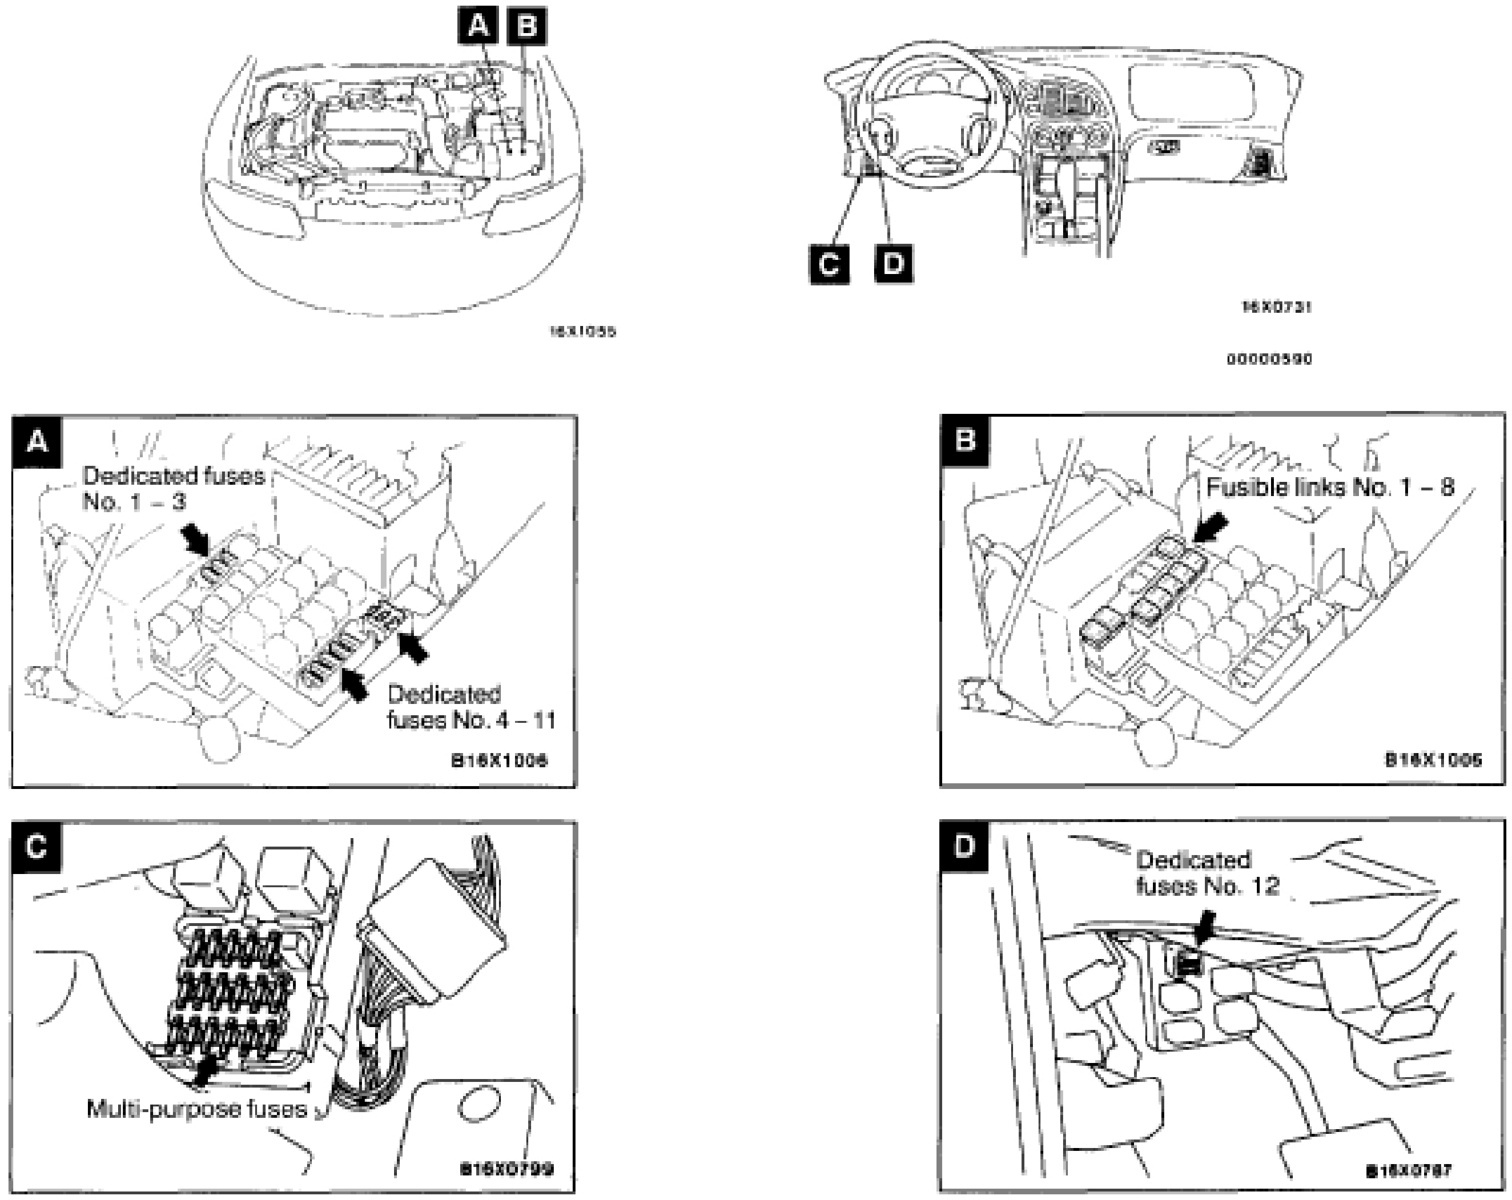 2001 Chrysler Sebring Convertible Fuse Box Diagram Guide And 300m Panel 2007 Wiring Diagrams Scematic Rh 59 Jessicadonath De 2010